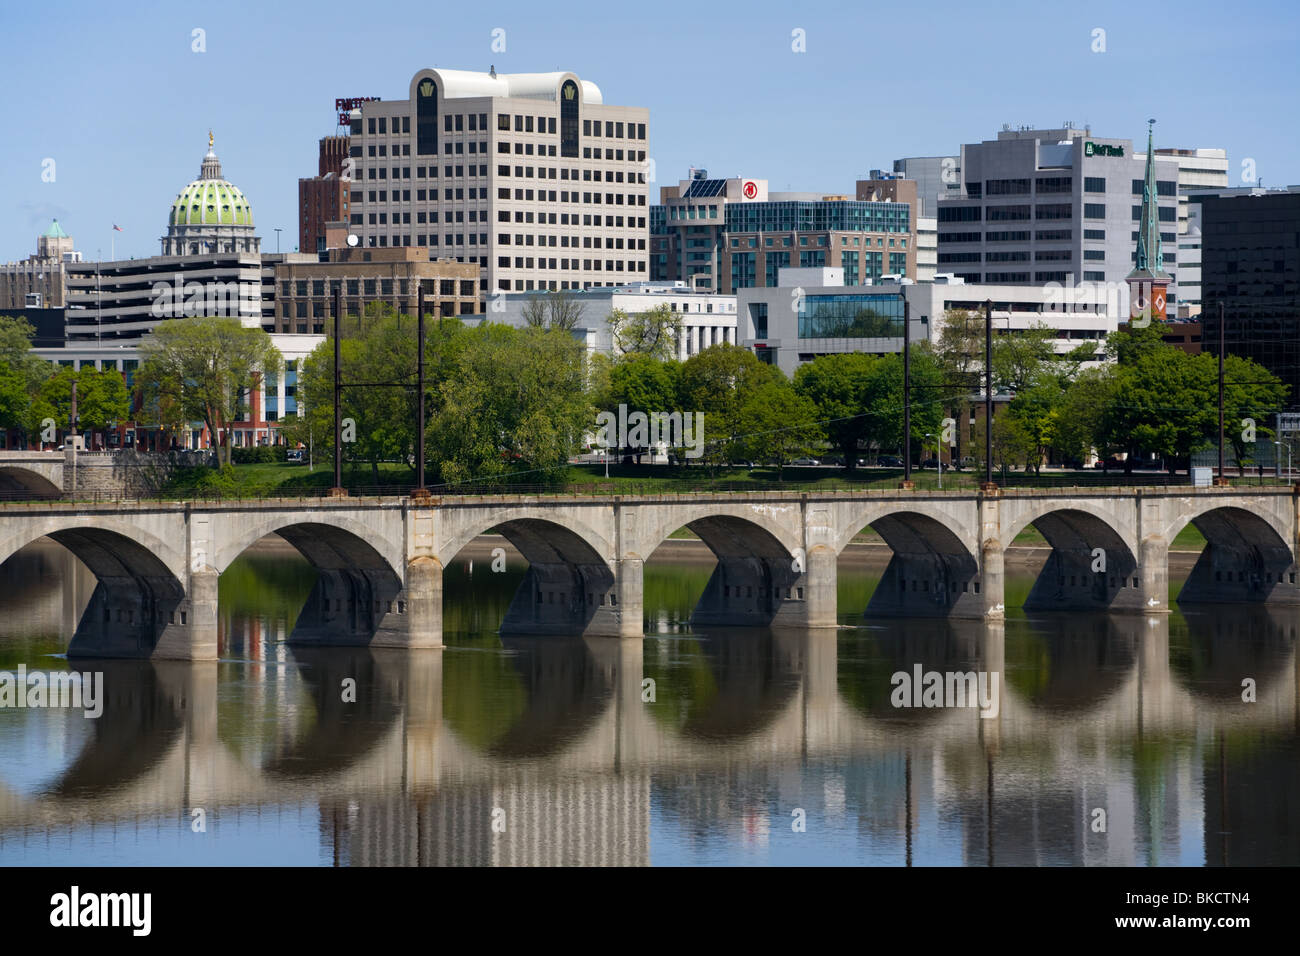 Skyline of Harrisburg, capital of Pennsylvania, on the Susquehanna River - Stock Image